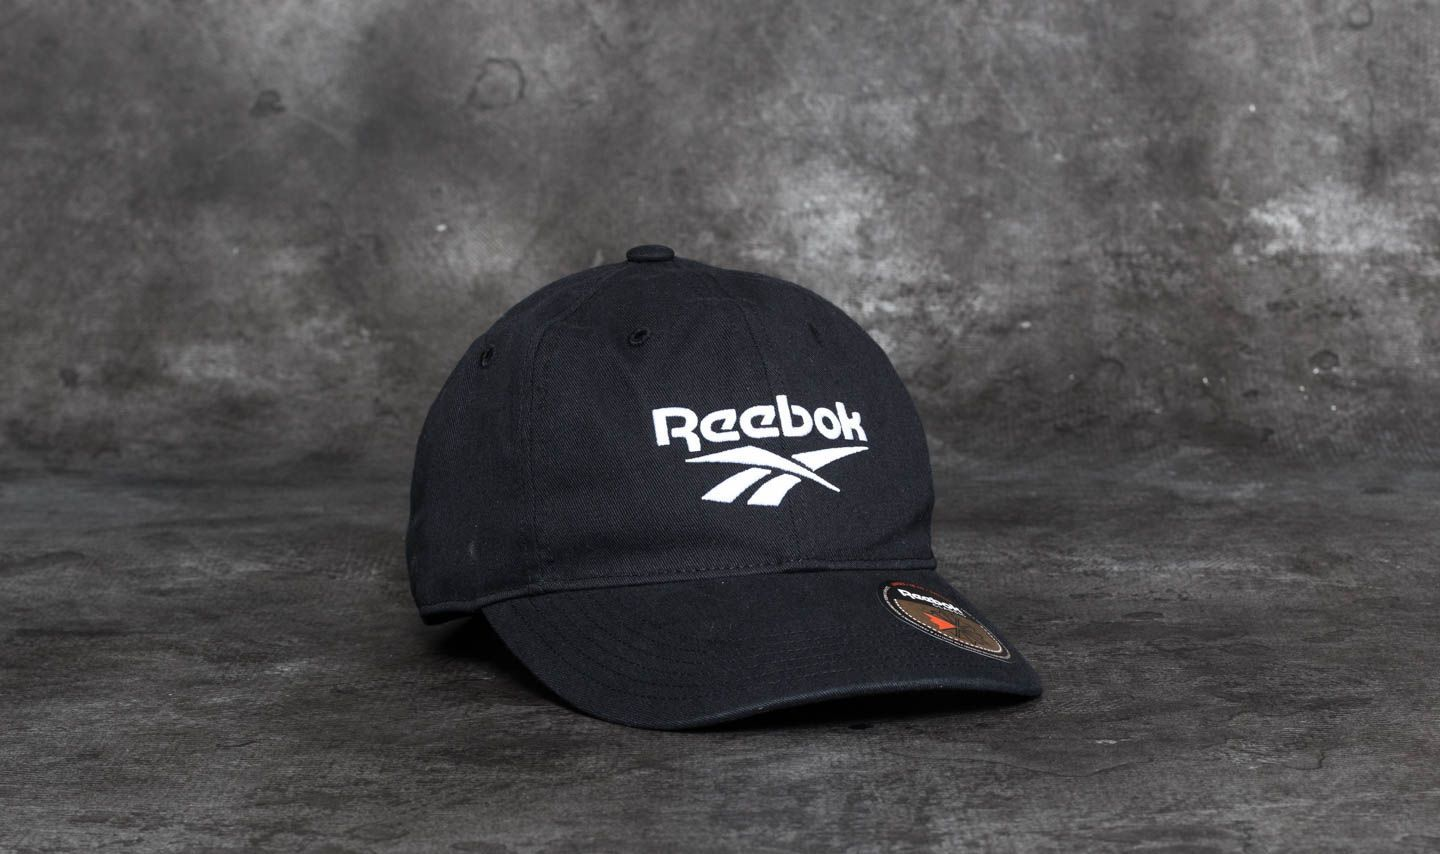 8edd1a785ca Reebok Lost   Found Cap Black